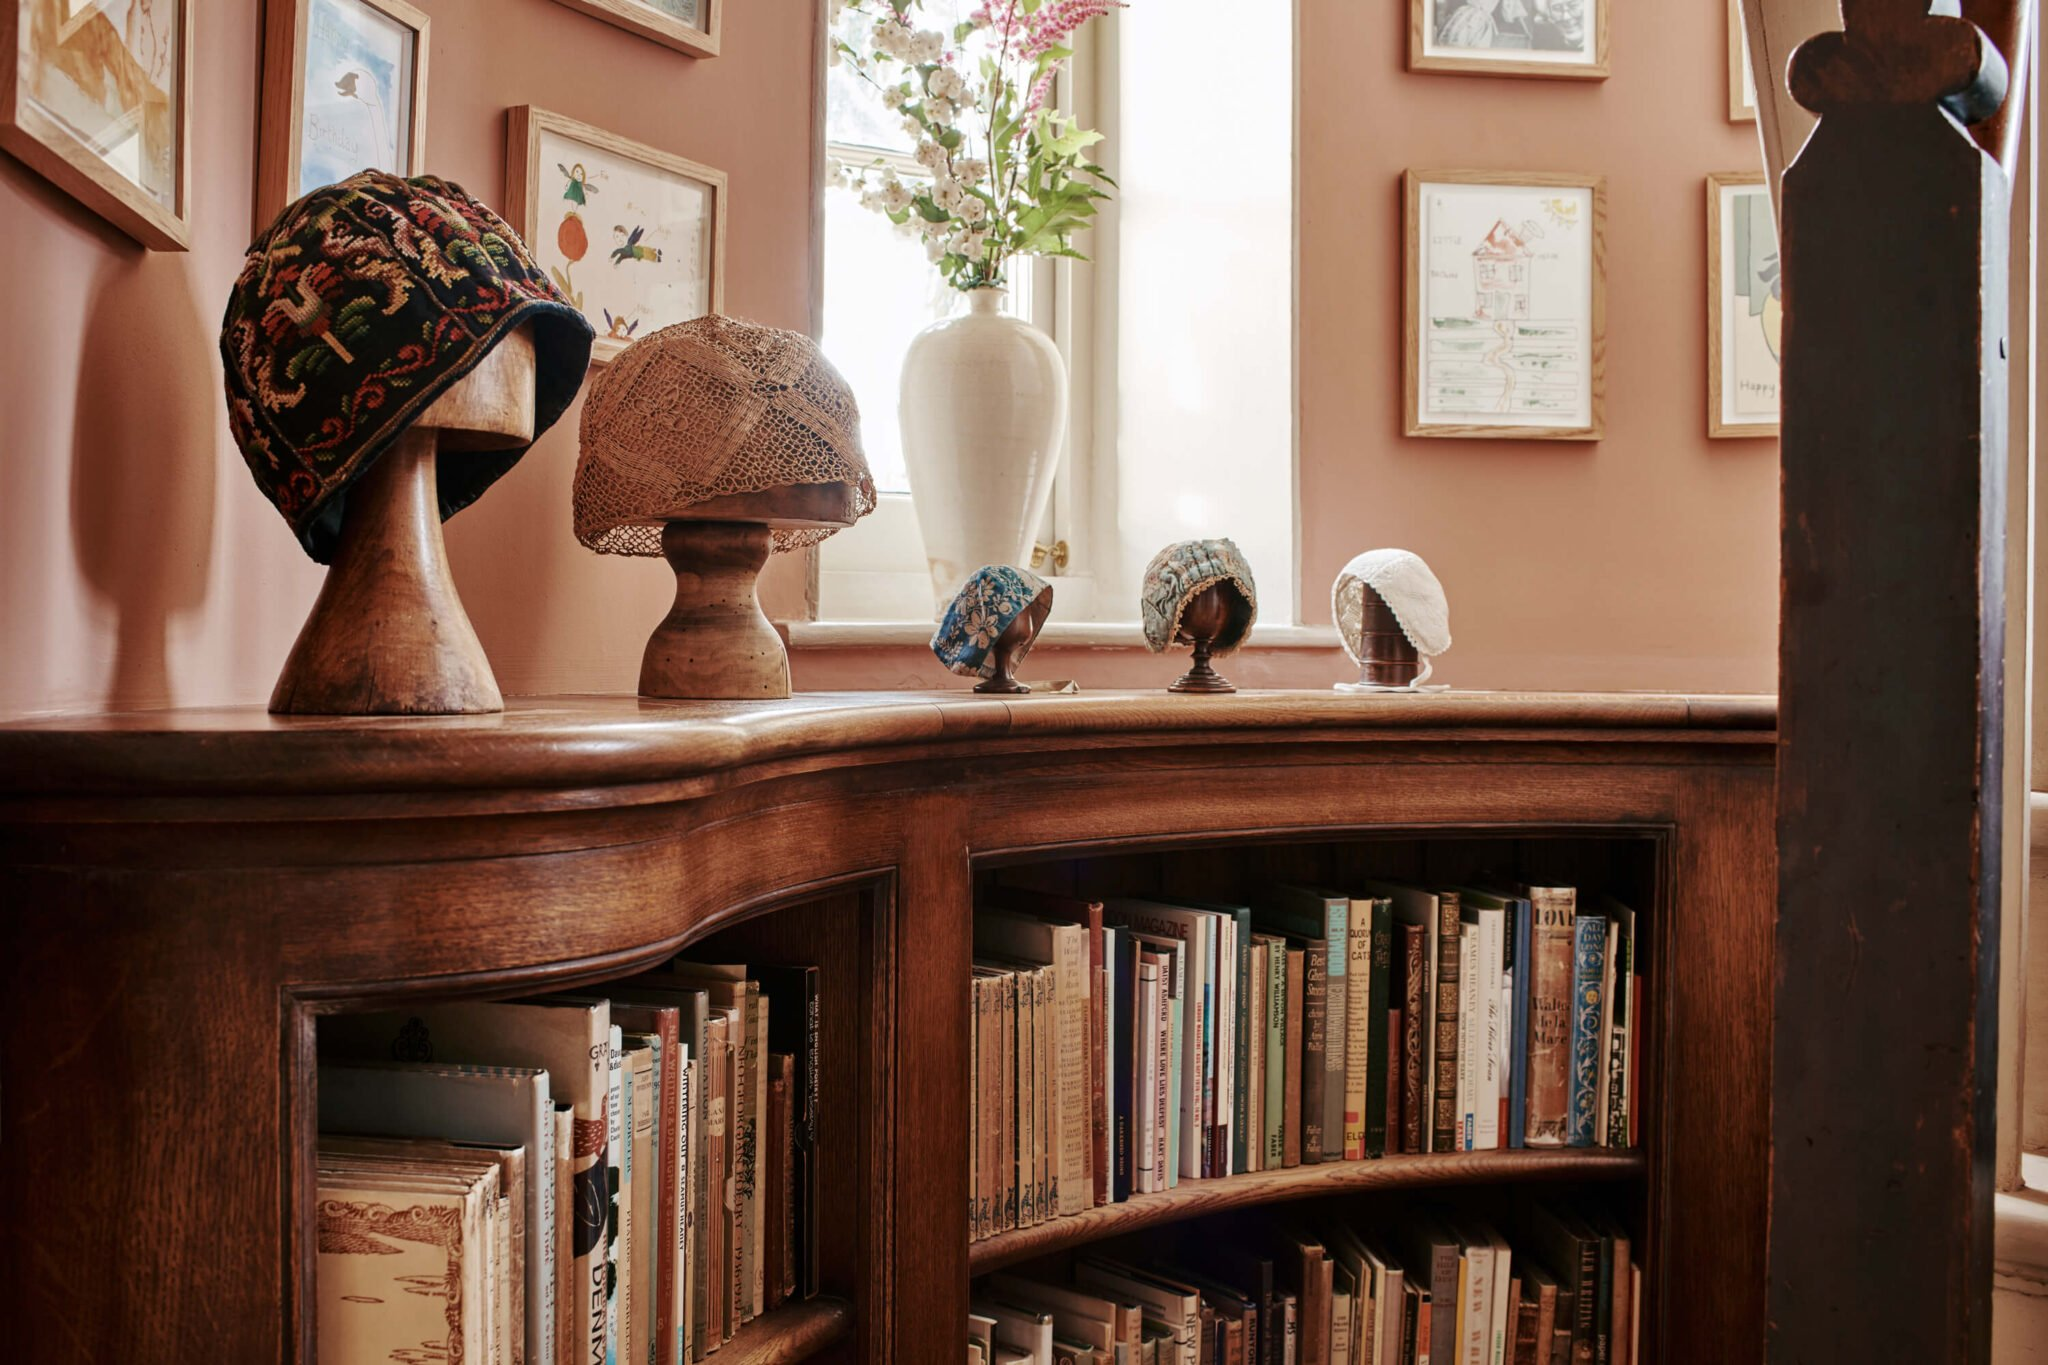 Bookcase with hats on show